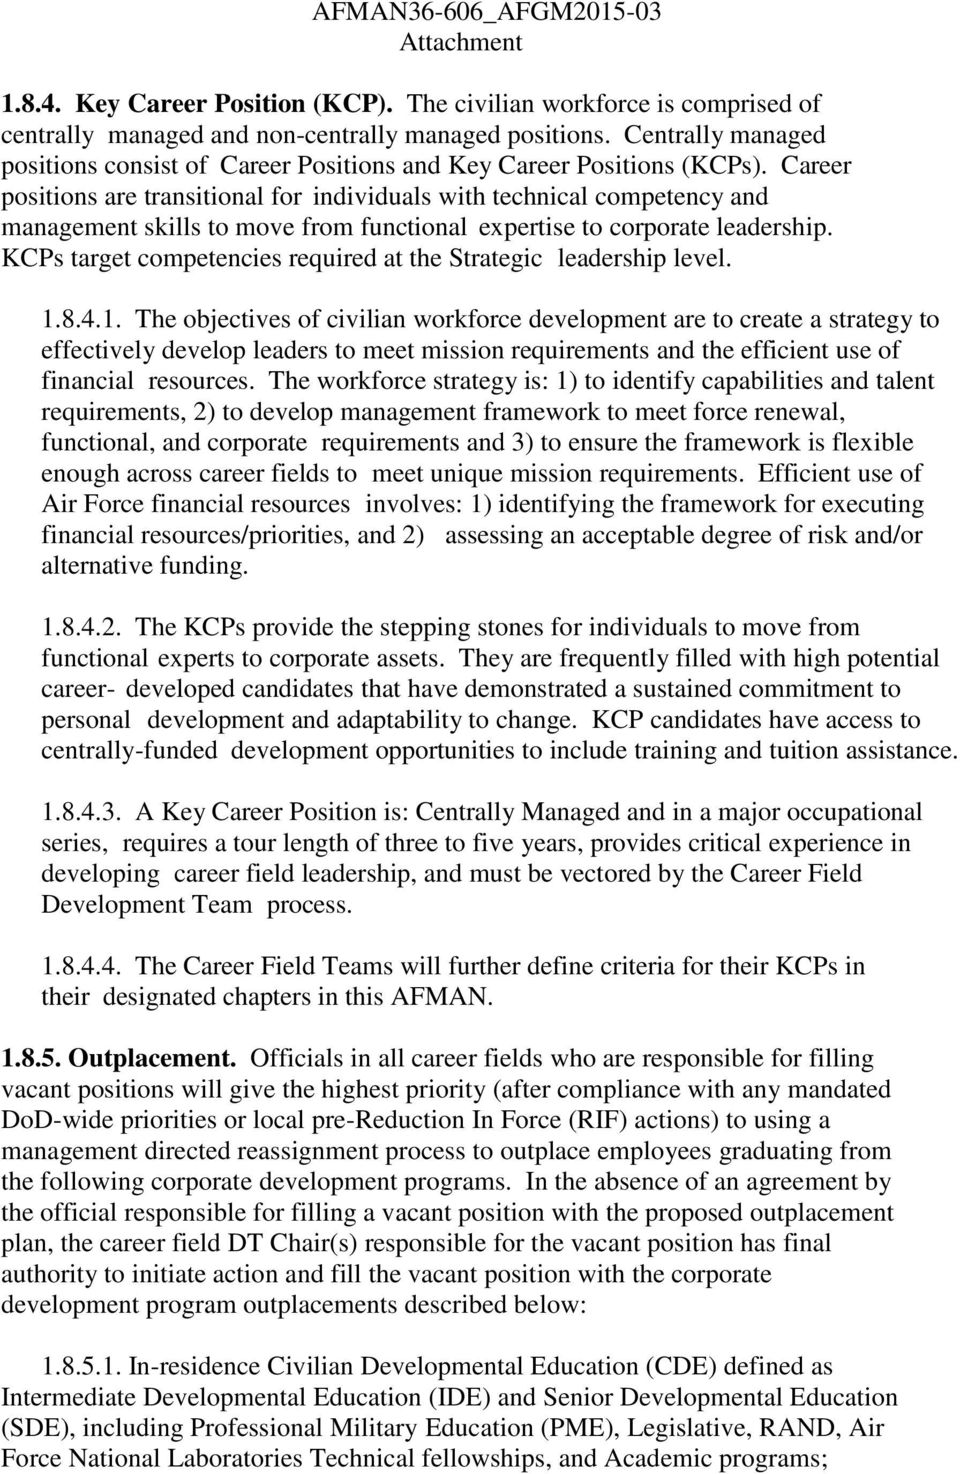 department of the air force pdf career positions are transitional for individuals technical competency and management skills to move from functional